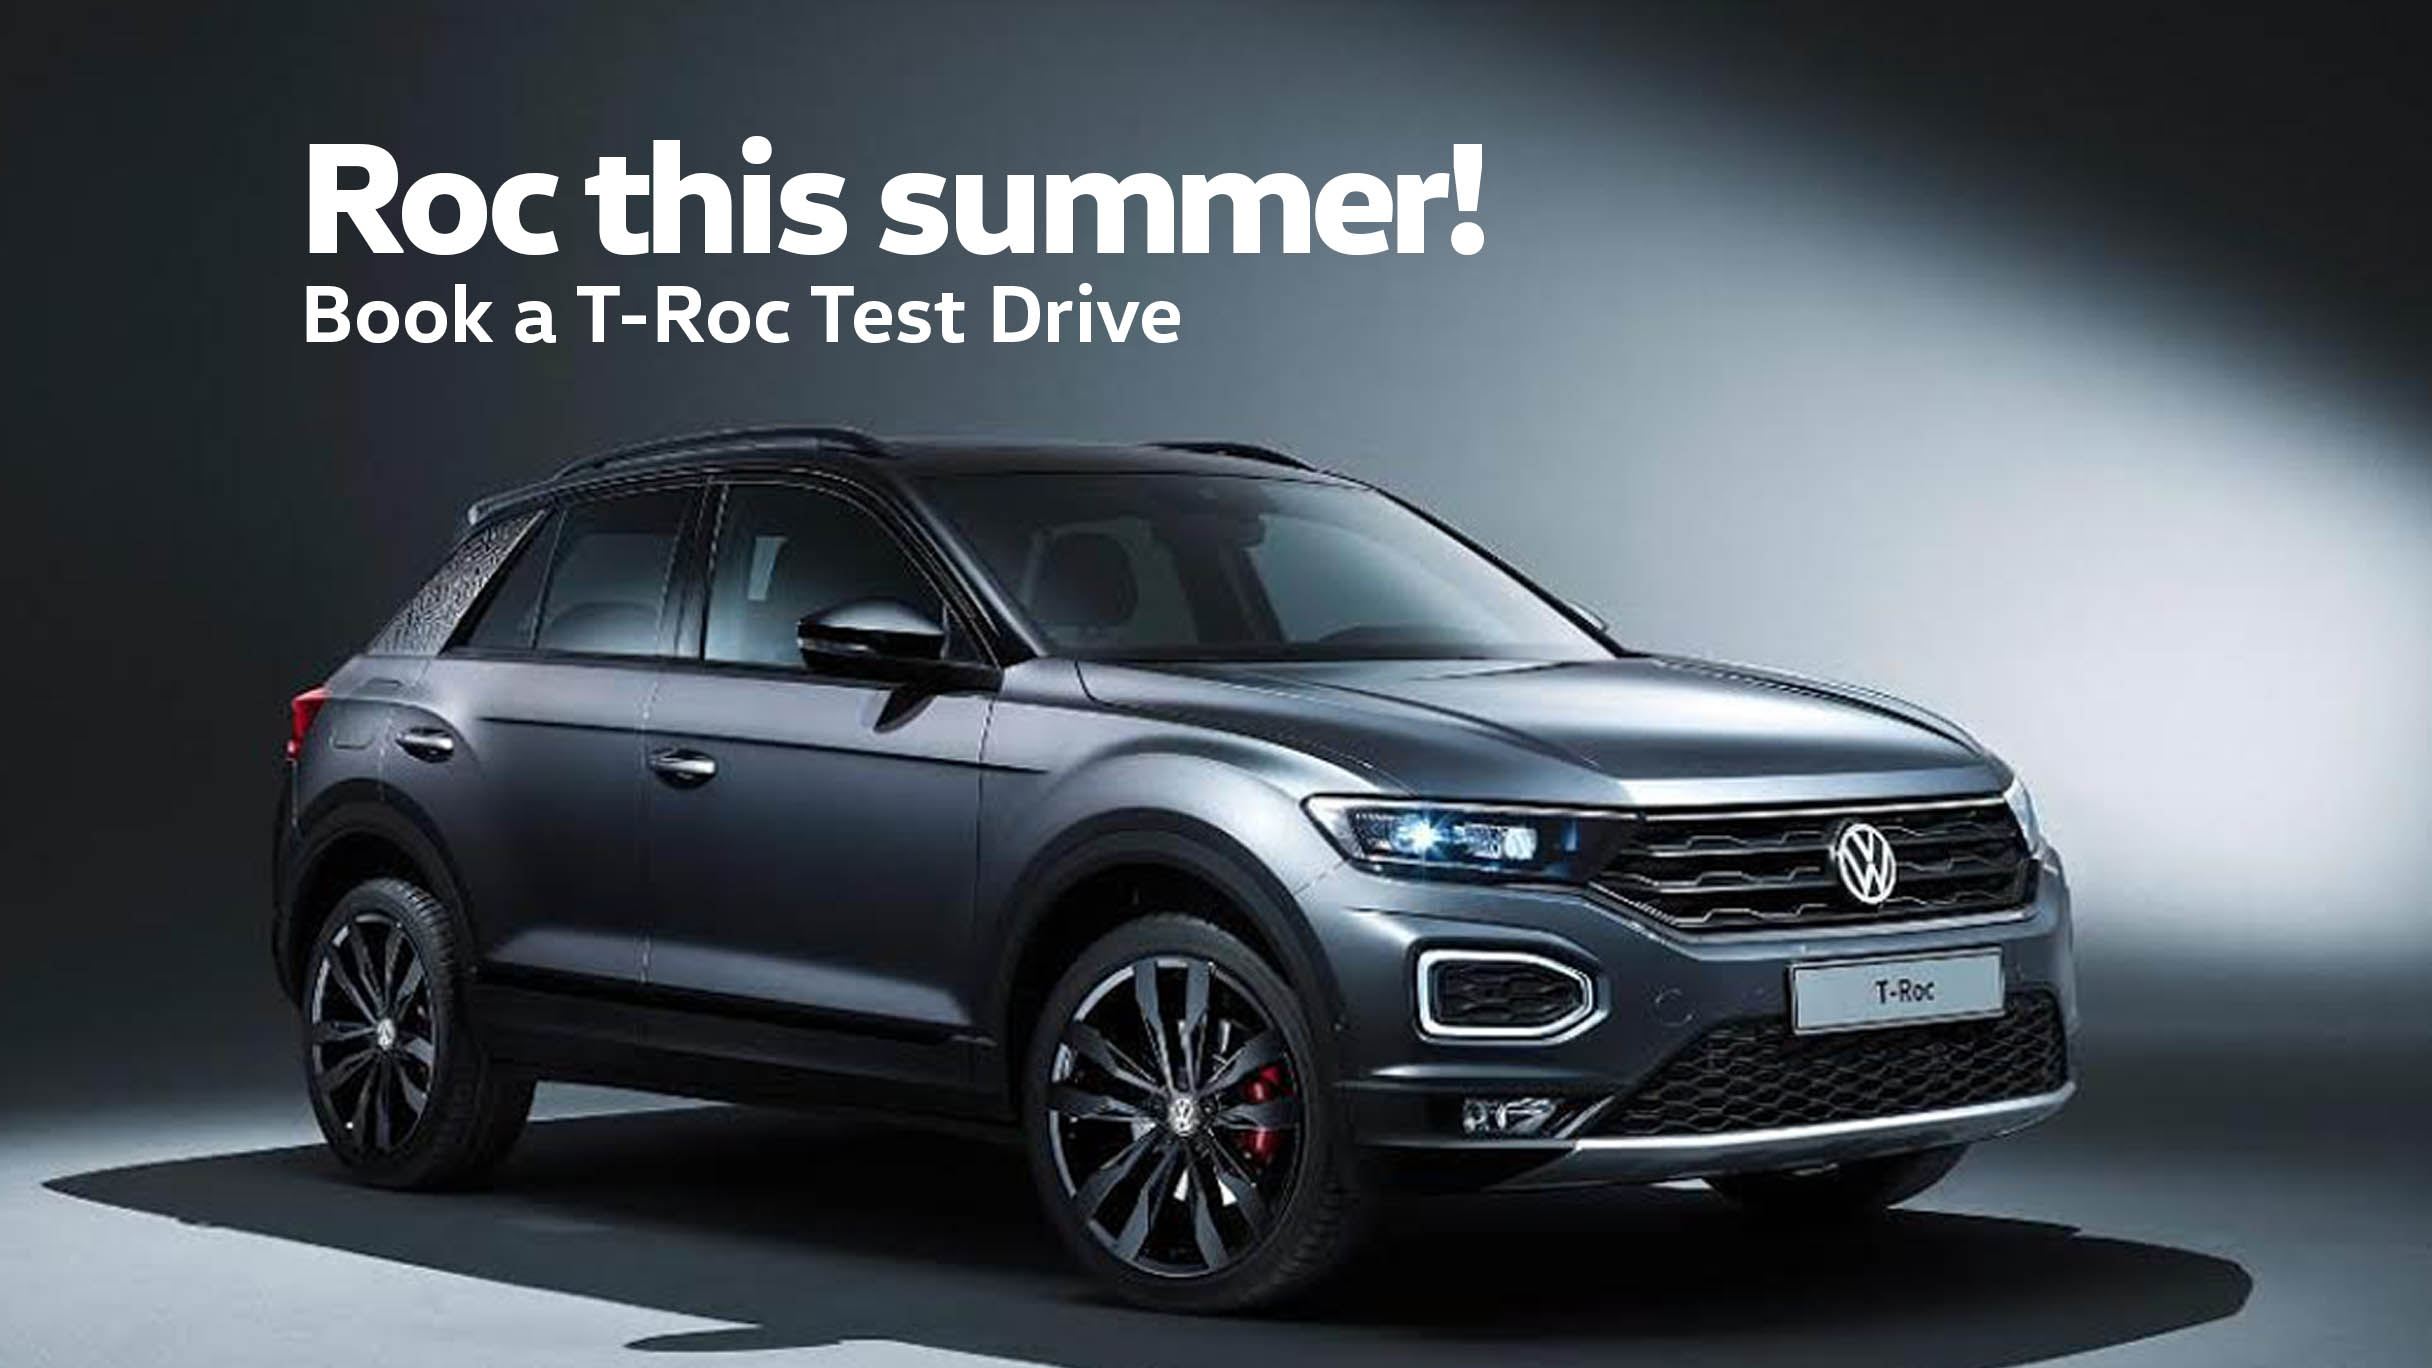 Test drive T-Roc SUV the Barons Woodmead